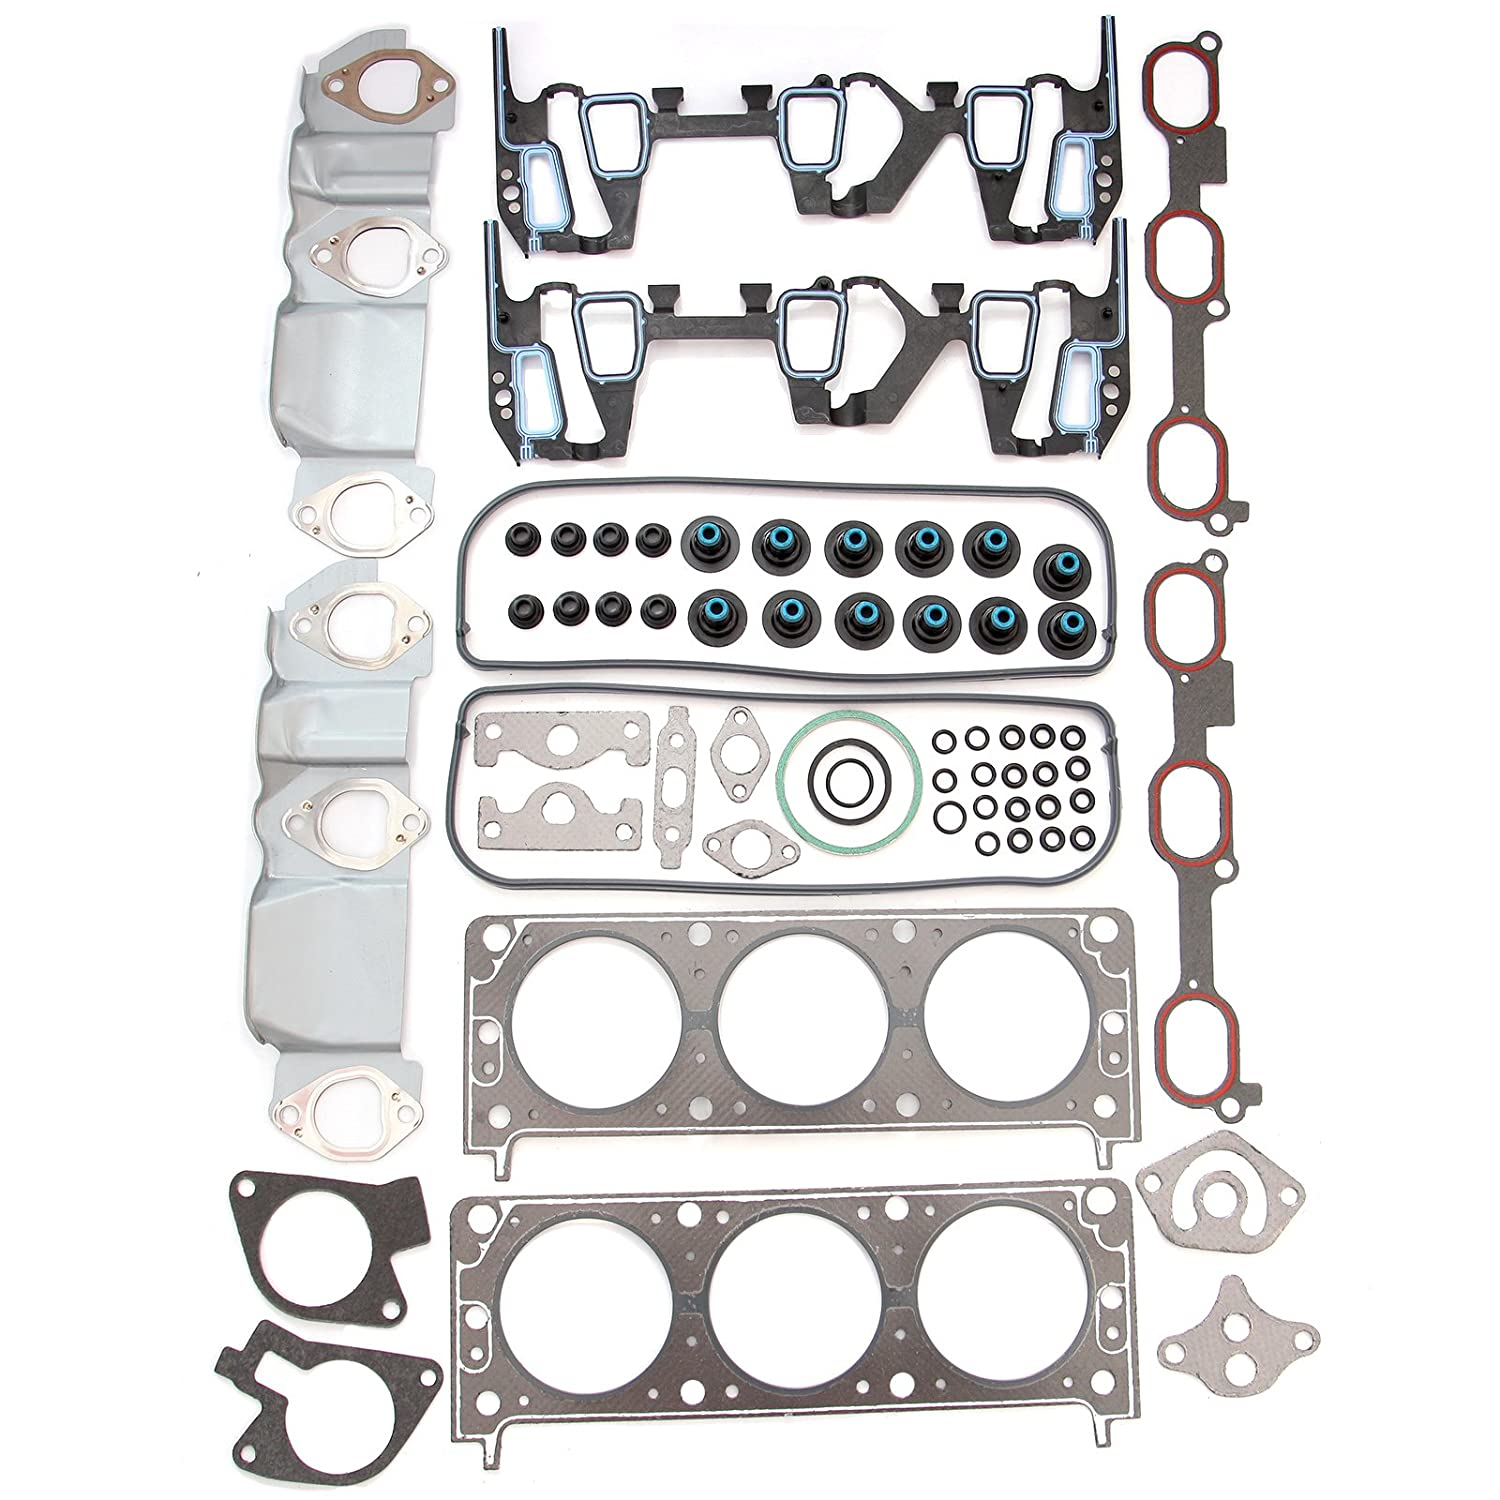 SCITOO Replacement Head Gasket Kits Chevrolet Impala Buick Pontiac Oldsmobile 3.1L  3.4L Engine Head Gaskets Set Kit 058048-5206-1450301